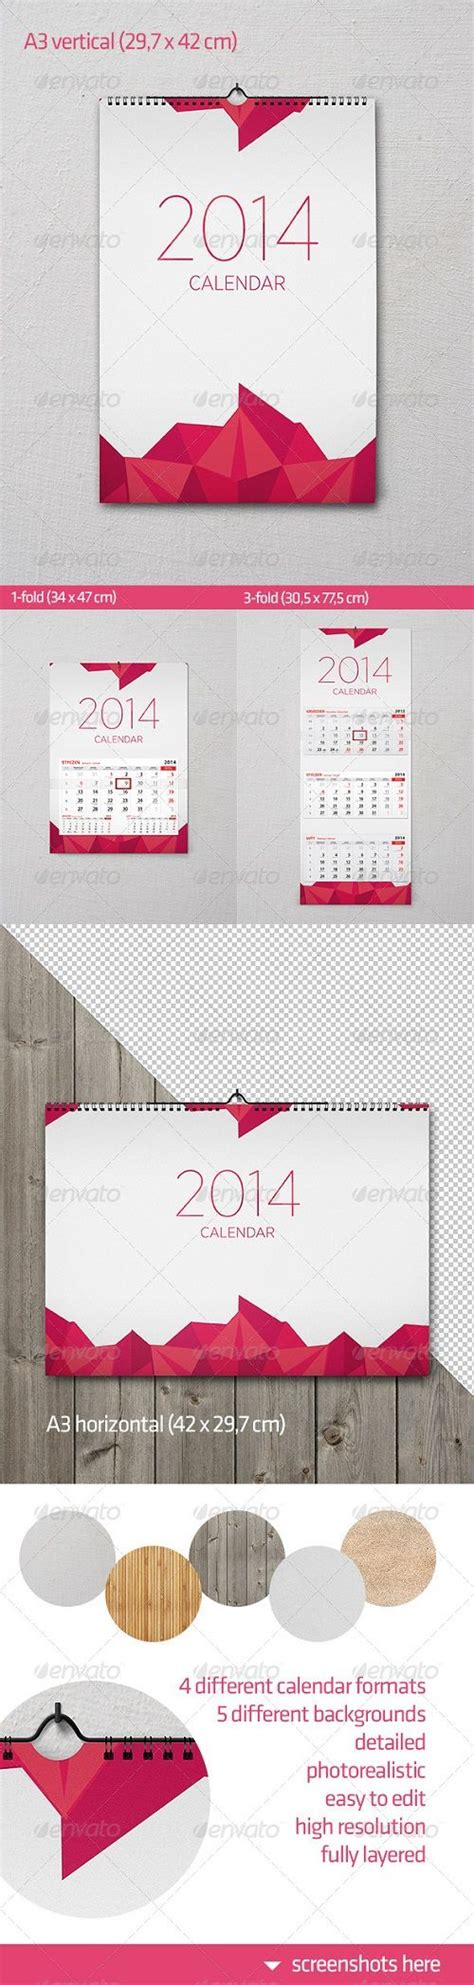 17 Best Images About Corporate Calendar Design On Pinterest Calendar 2014 Fonts And Wall Mock Schedule Template